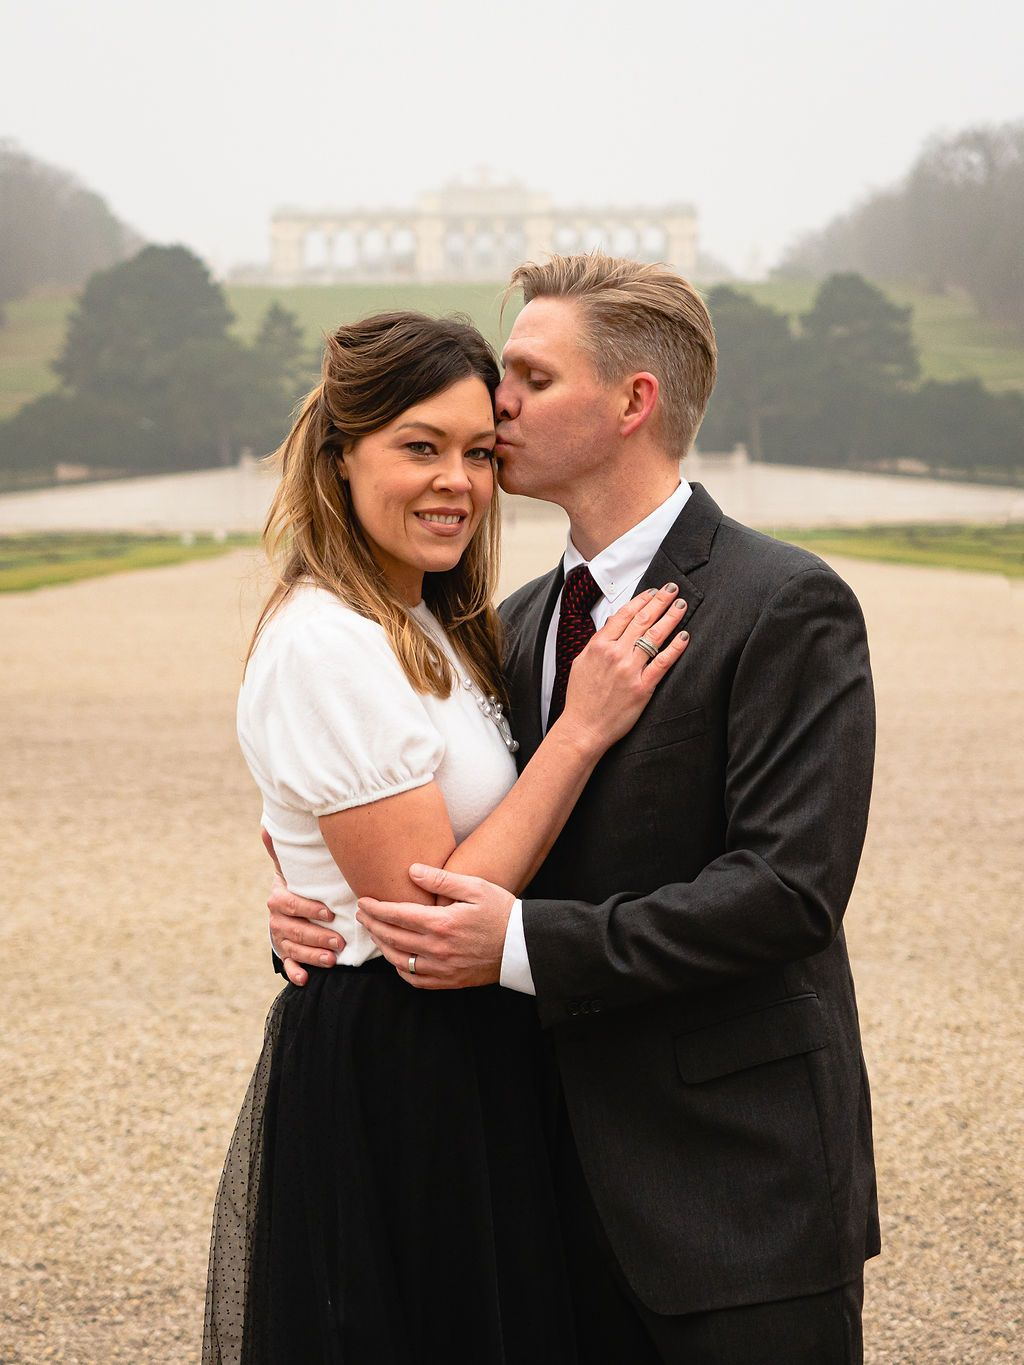 Woman looking at the camera and man is kissing her forehead. Background is the Gloriette in Vienna, Austria